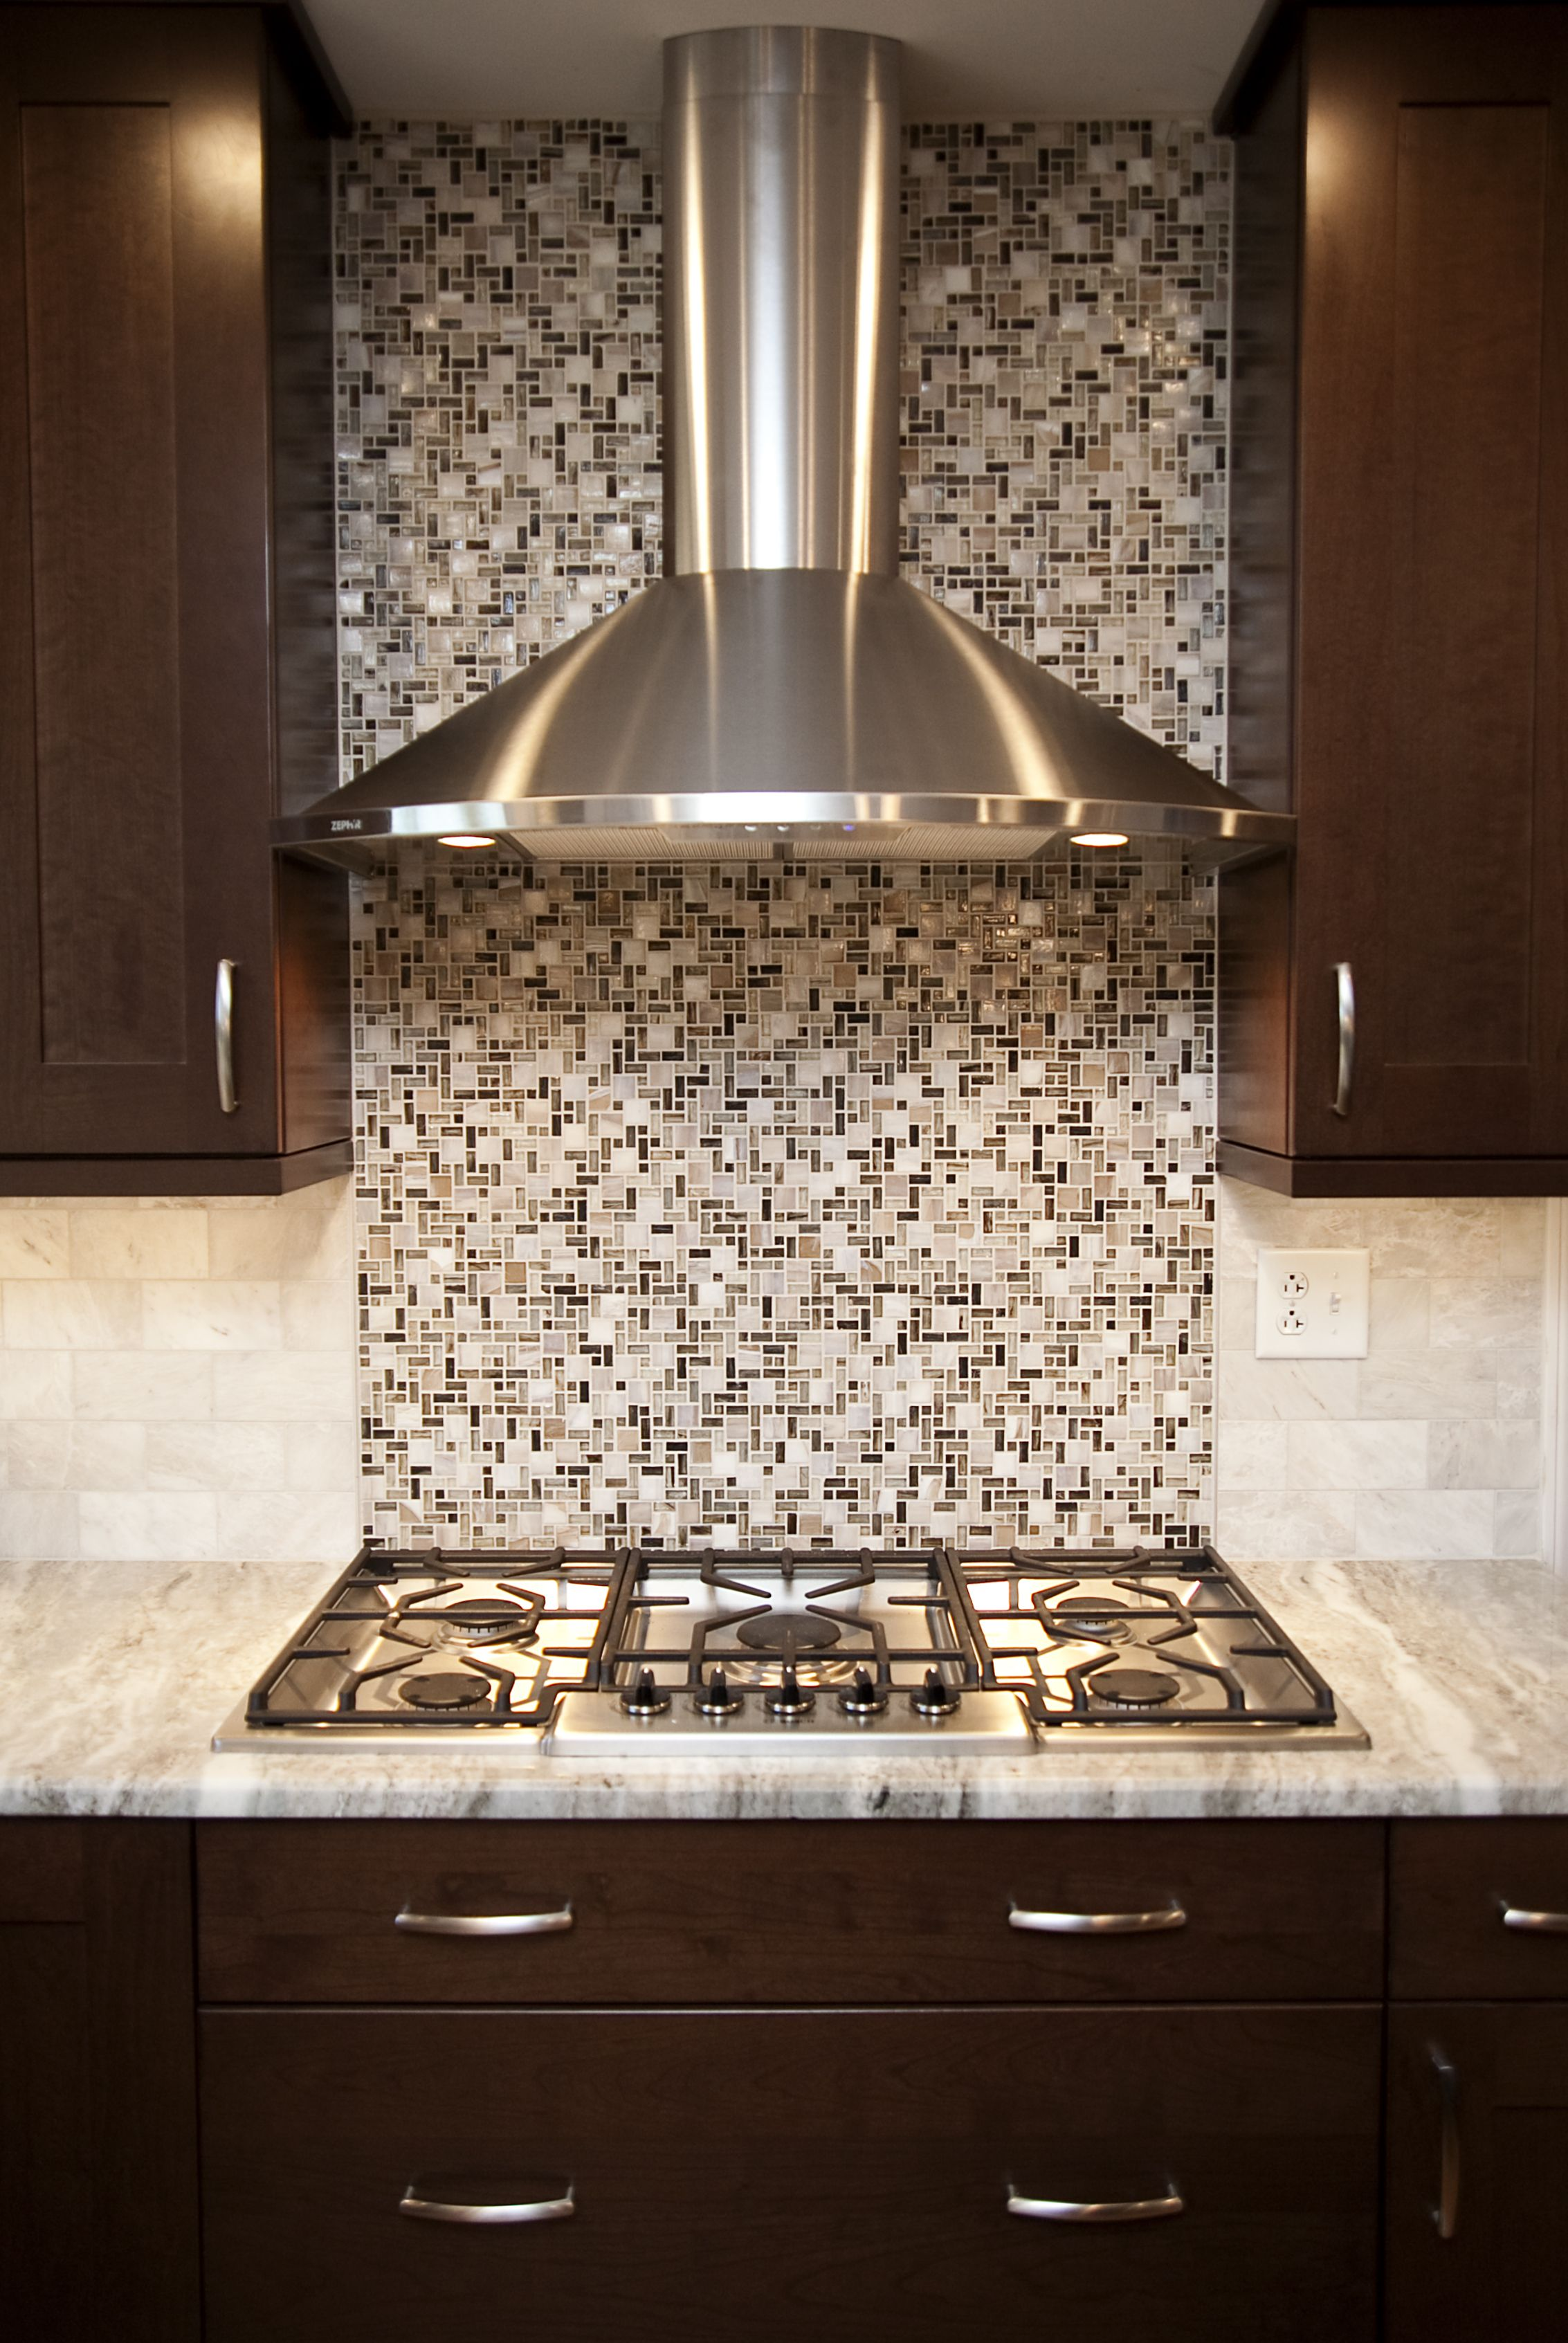 Transitional naperville kitchen remodel beautiful stainless hood beautiful stainless hood highlights the cooktop area along with glass mosaic backsplash tile dailygadgetfo Images